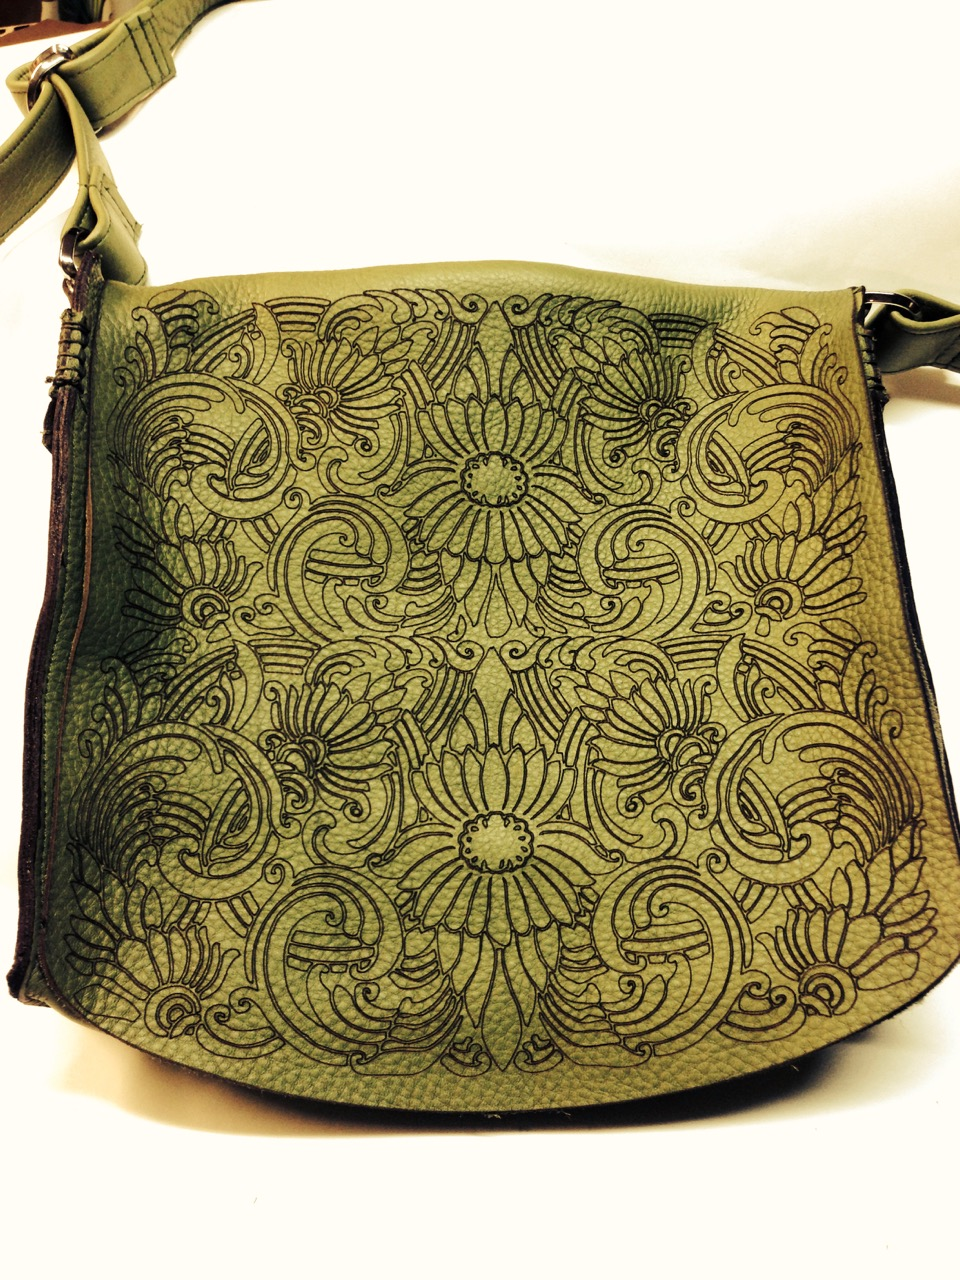 etched leather bag